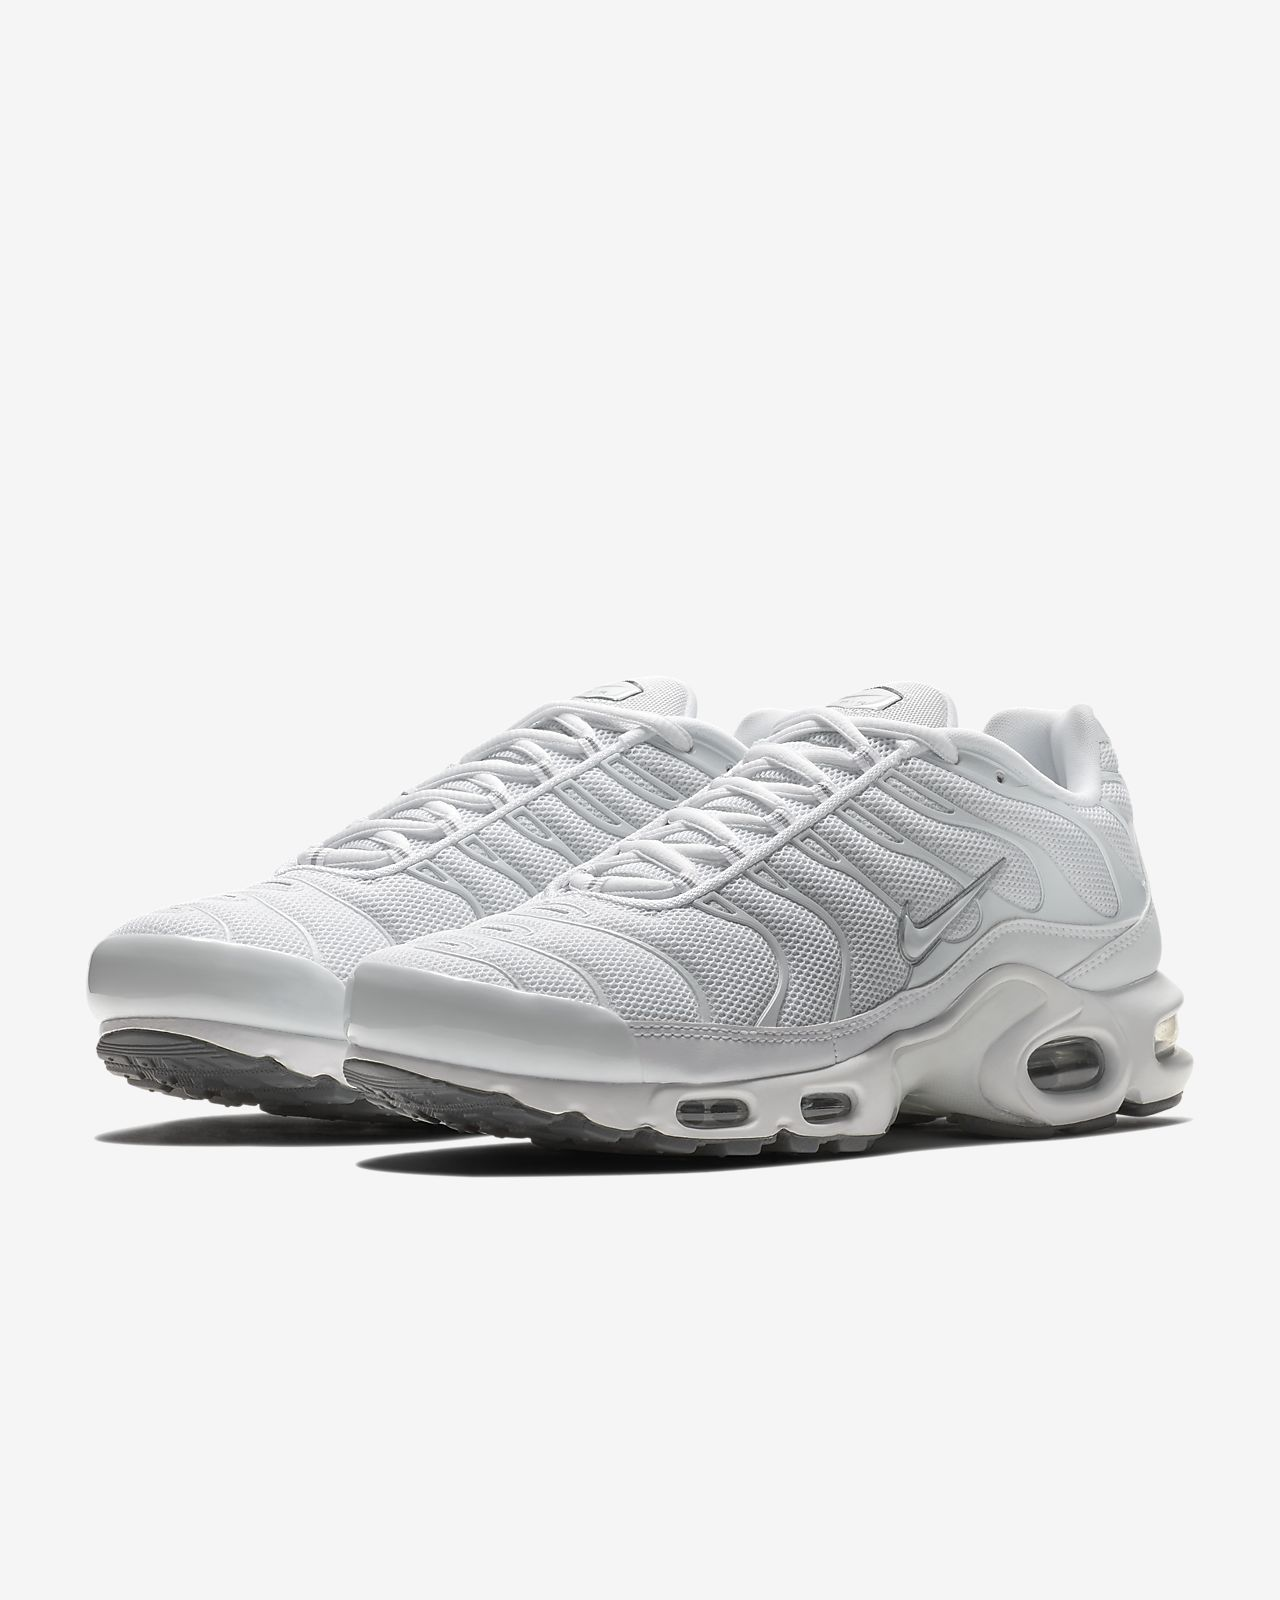 svart hvit nike air max pluss